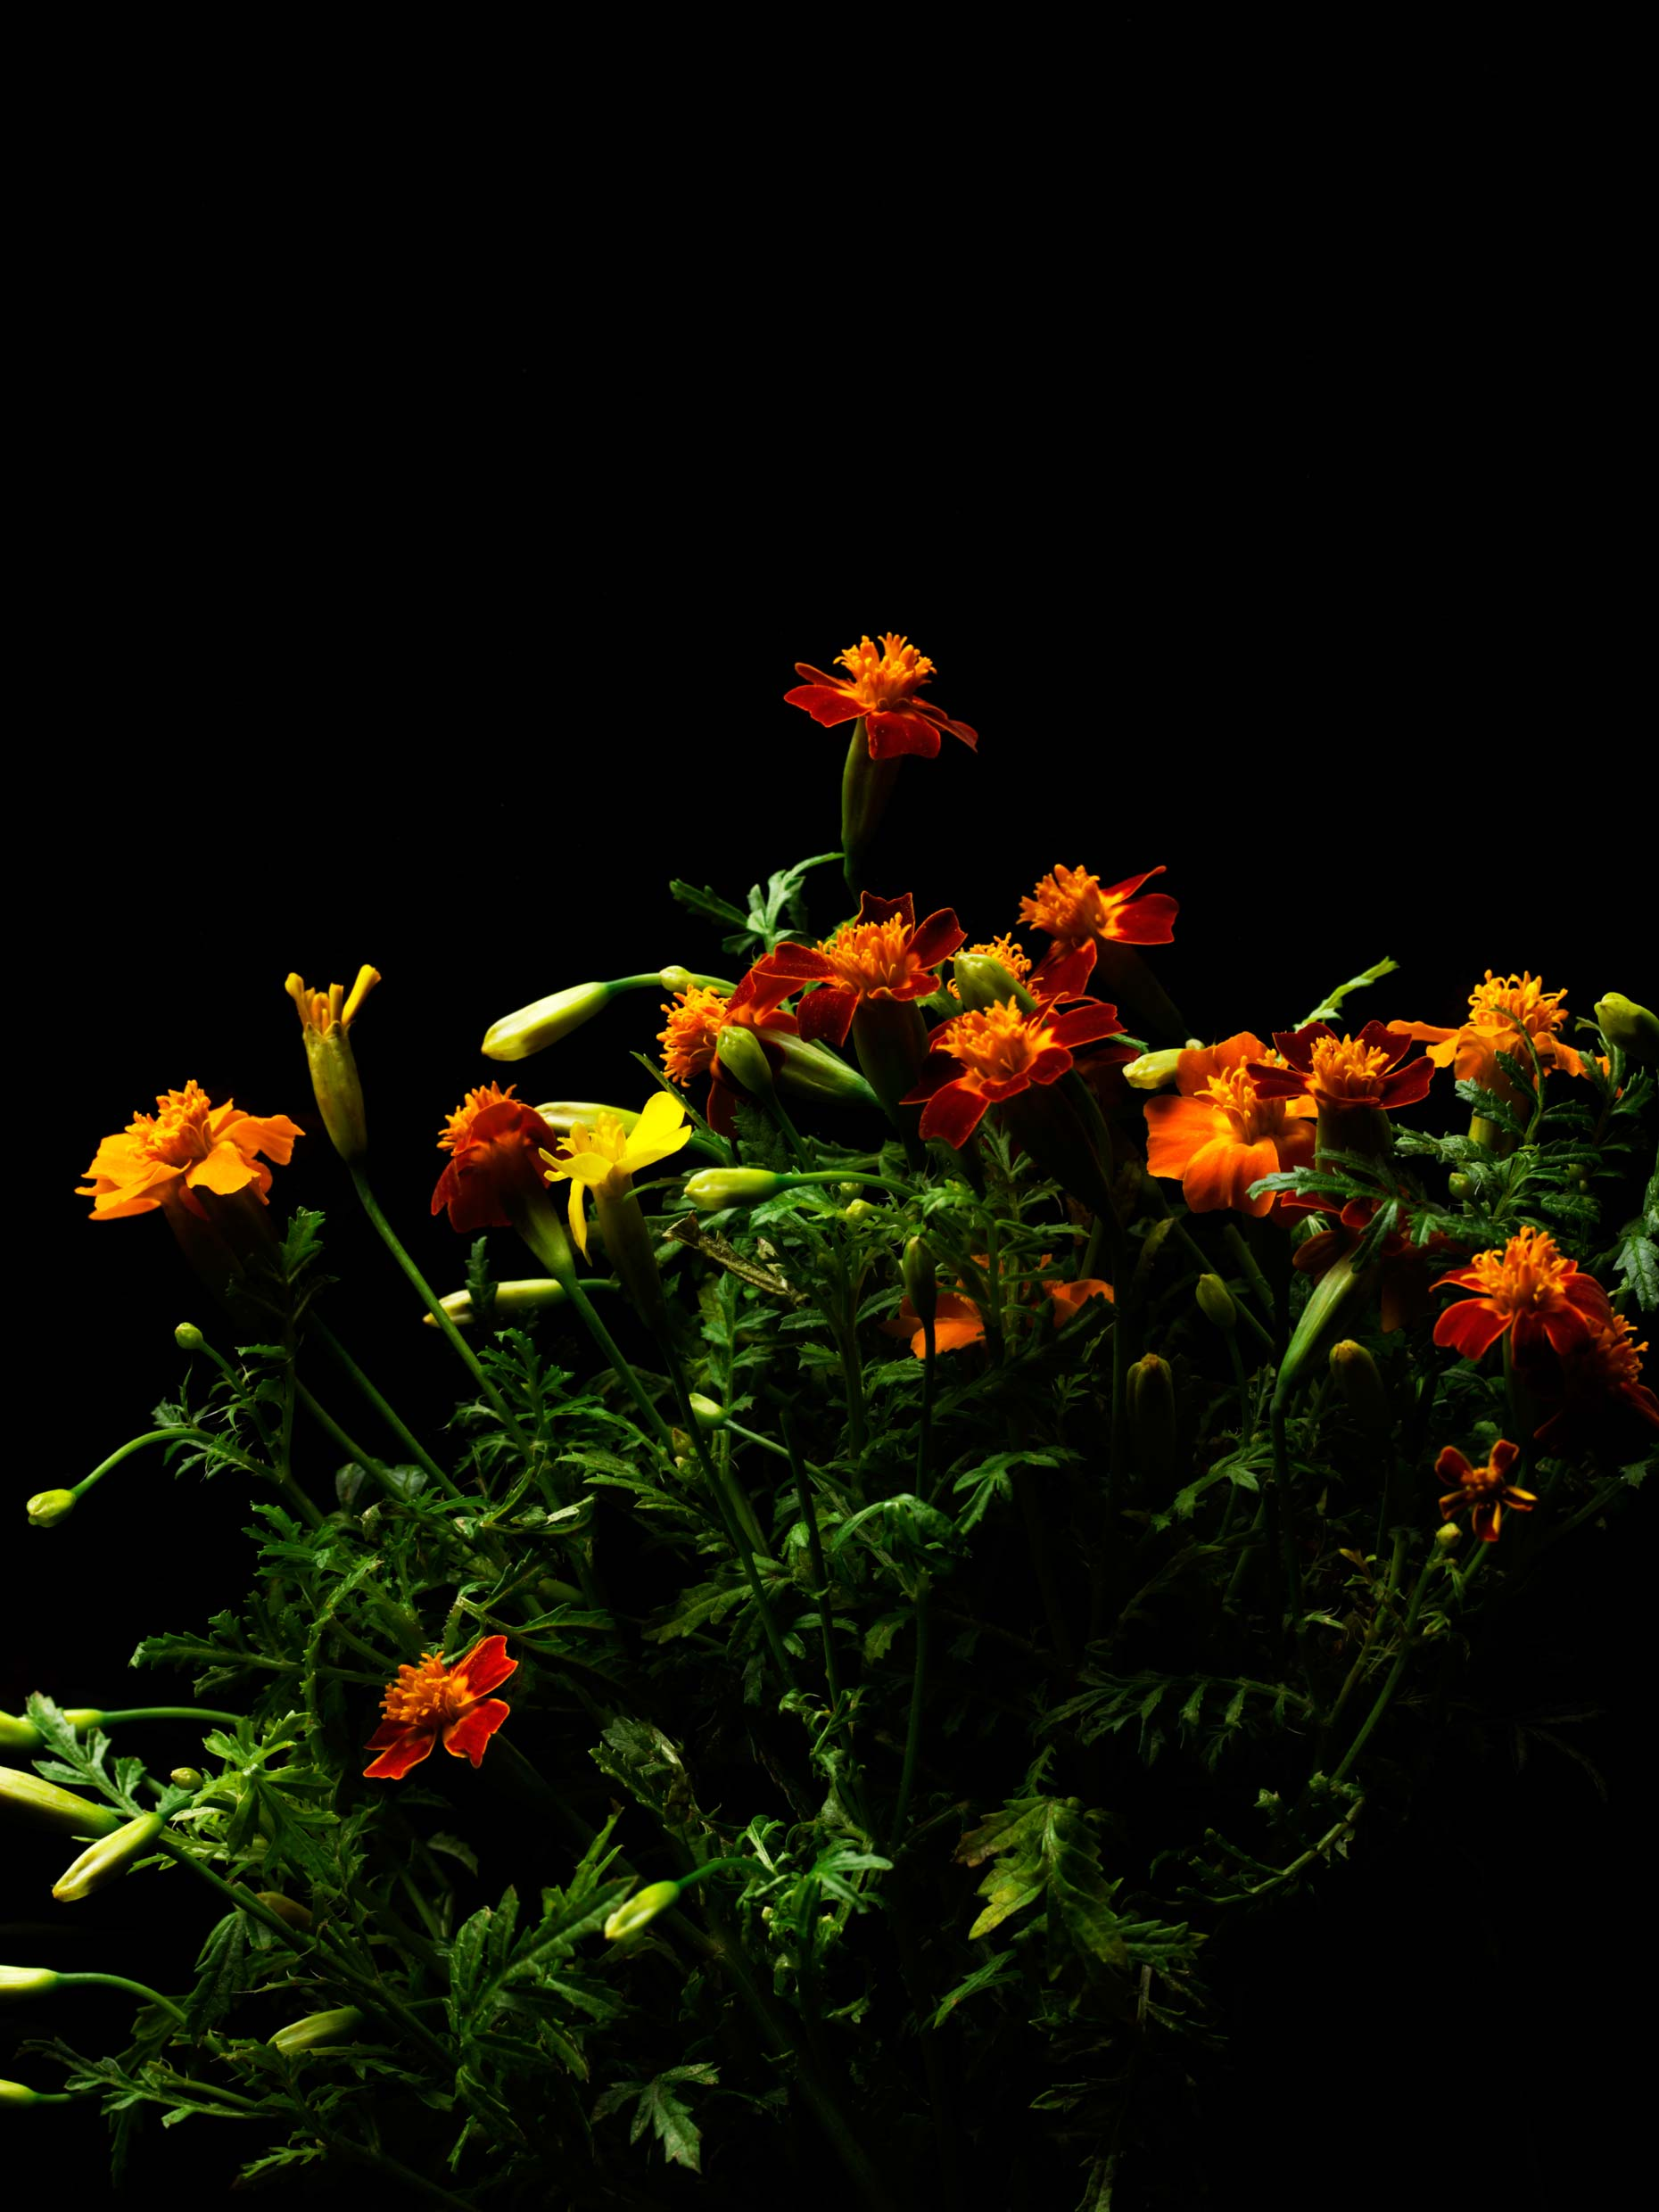 adrian_mueller_edible_flowers_04